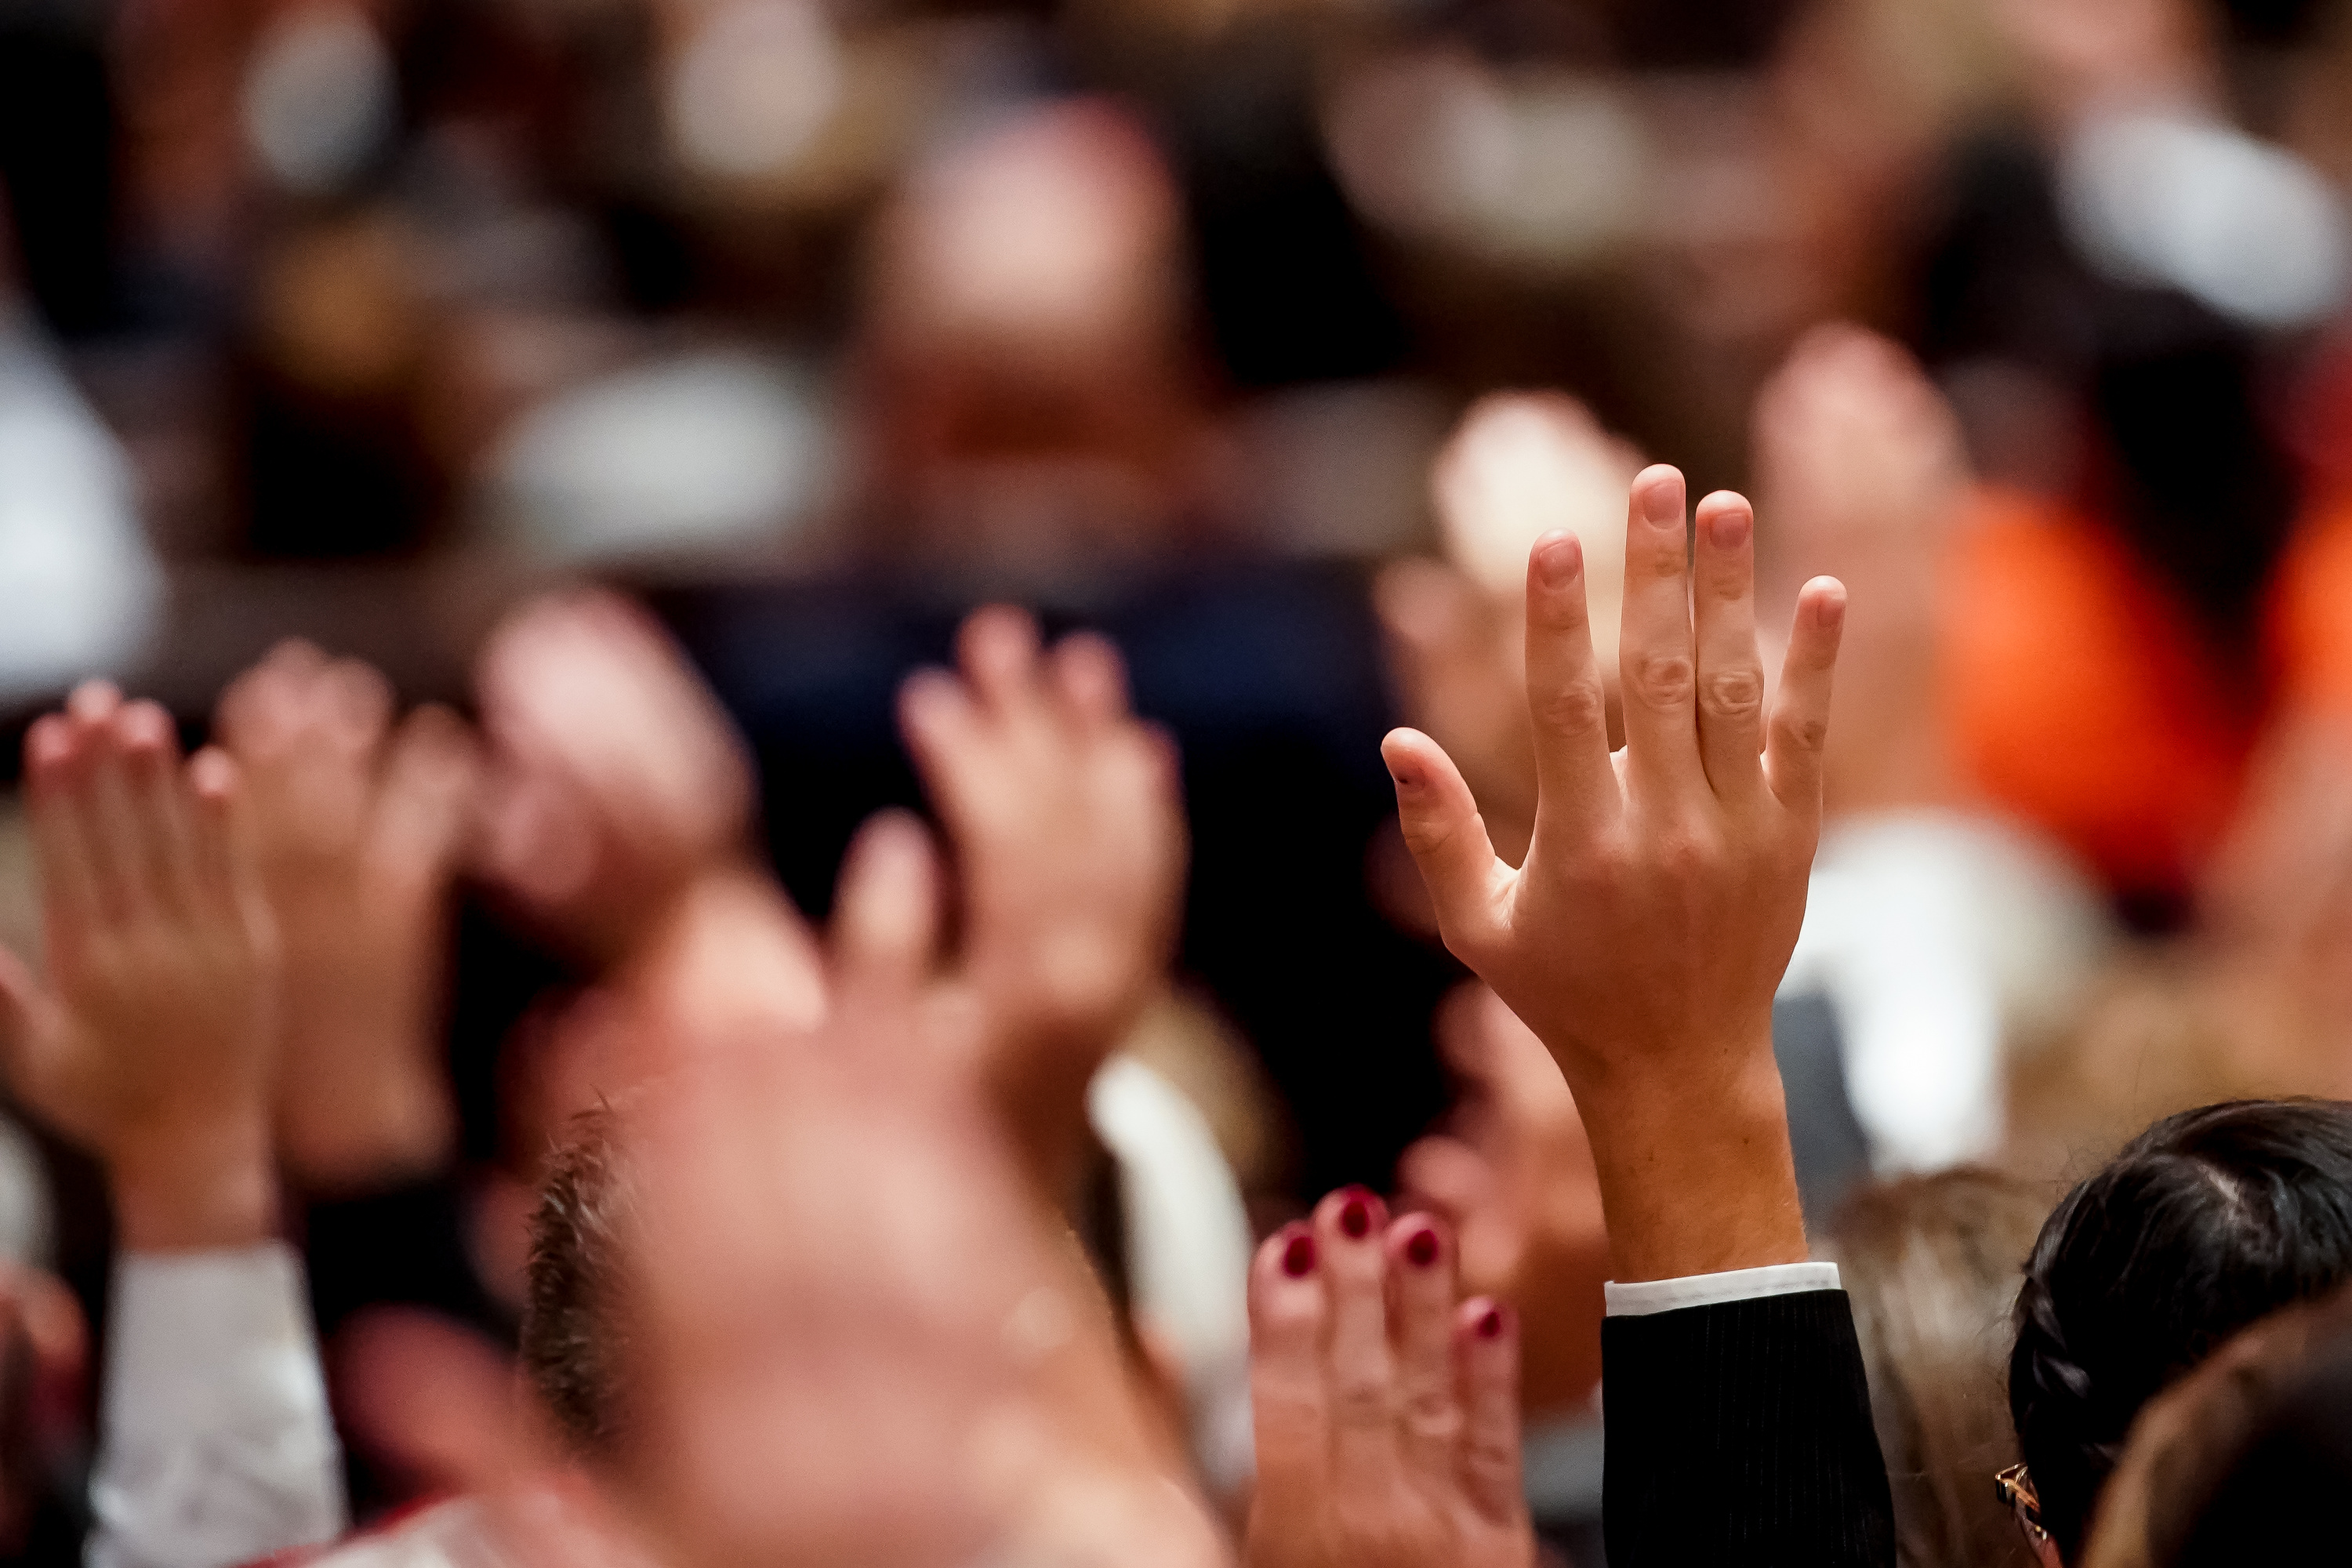 Conferencegoers sustain church leadership during the Saturday afternoon session of the 189th Semiannual General Conference of The Church of Jesus Christ of Latter-day Saints in the Conference Center in Salt Lake City on Saturday, Oct. 5, 2019.